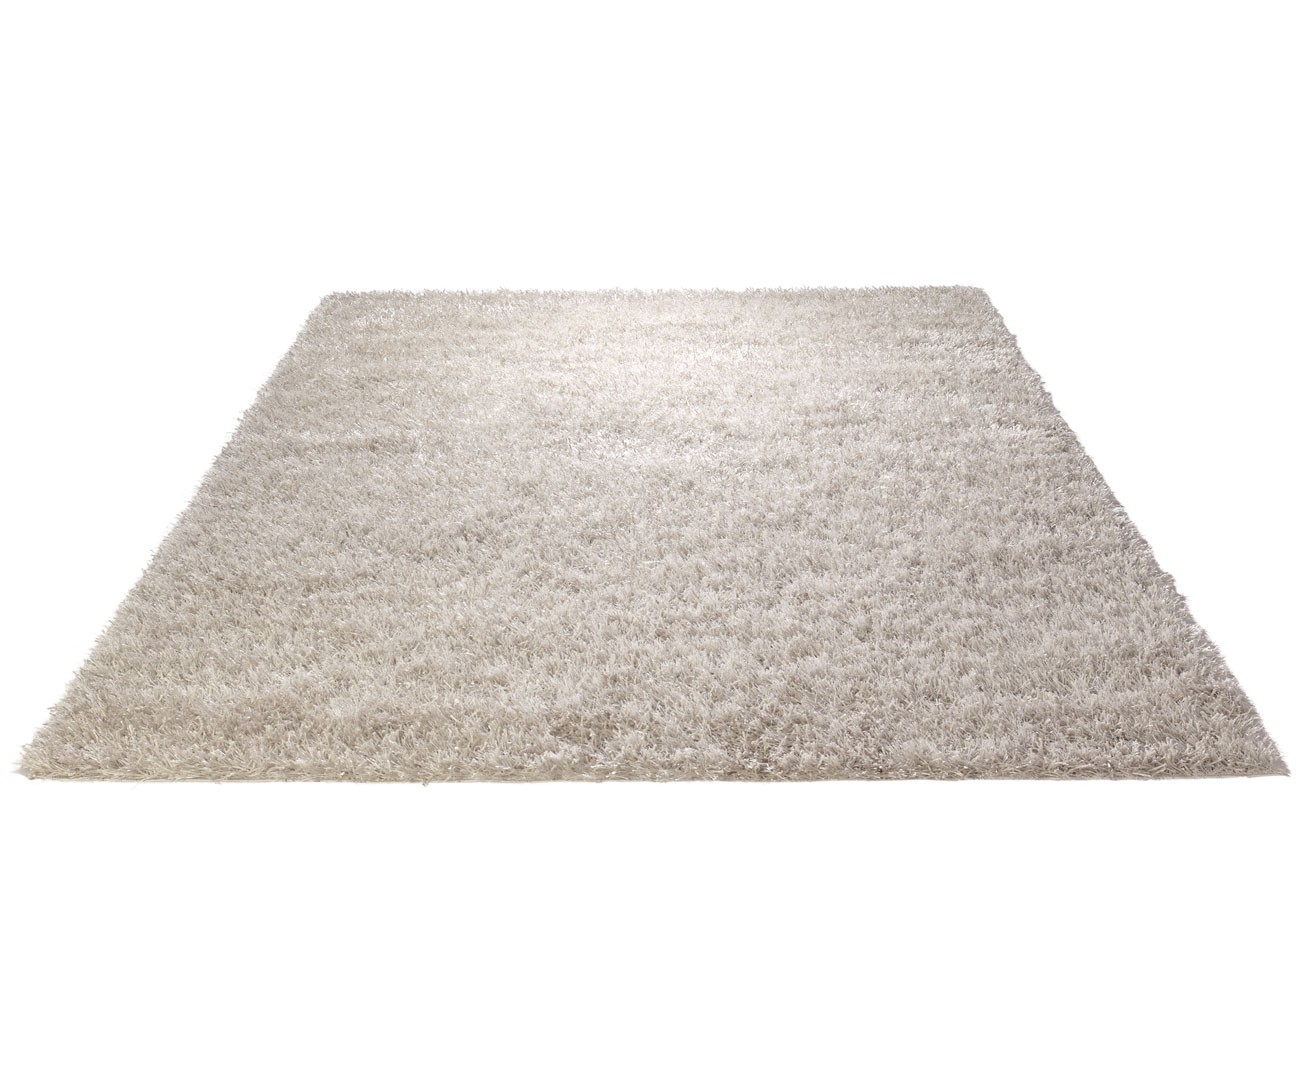 ikea tapis shaggy amazing hochflor langflor teppich loredo shaggy with ikea tapis shaggy. Black Bedroom Furniture Sets. Home Design Ideas